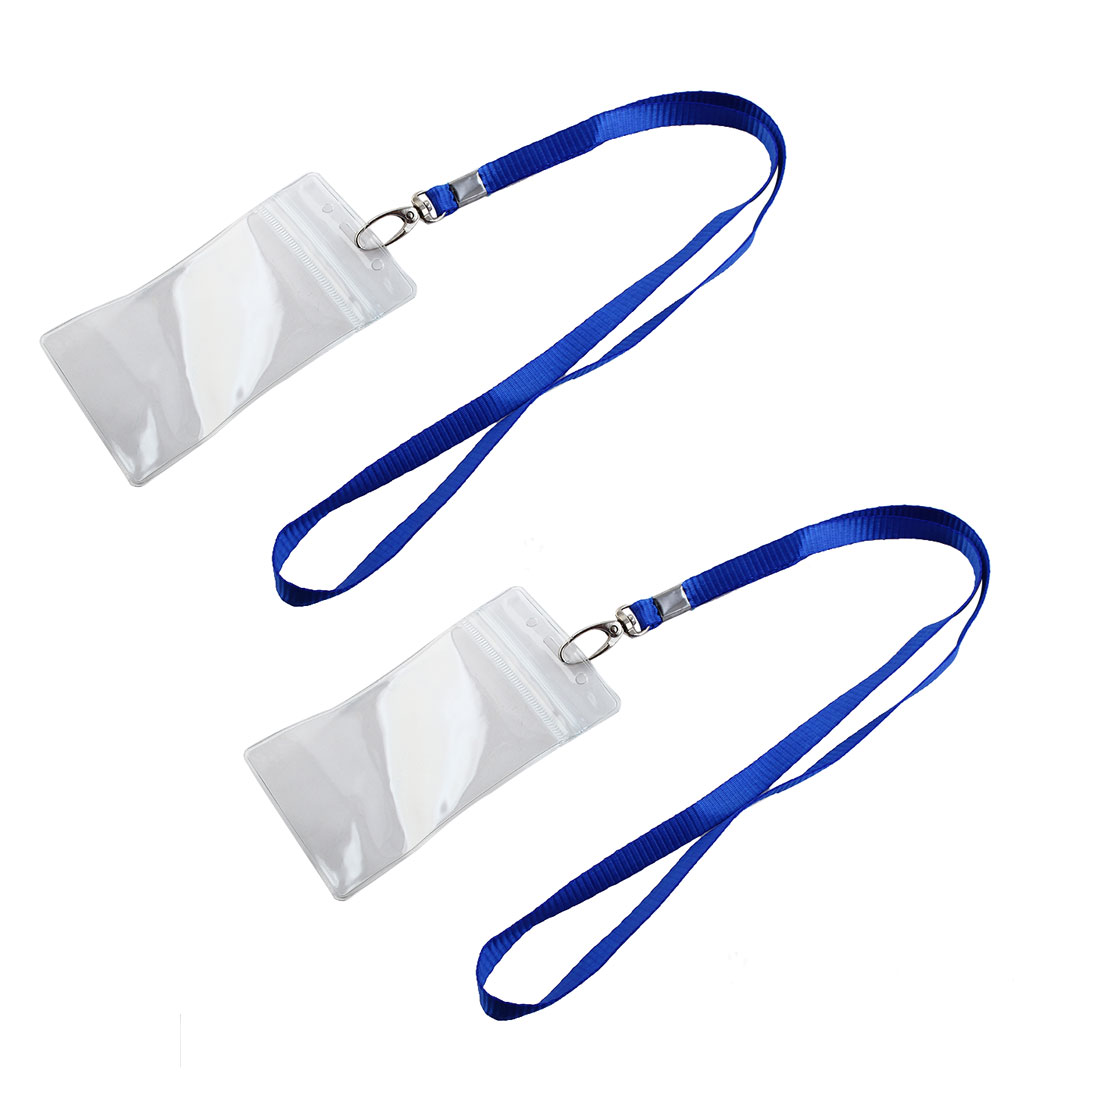 2 Pcs Clear ID Badge Card Vertical Holder w Blue Neck Strap